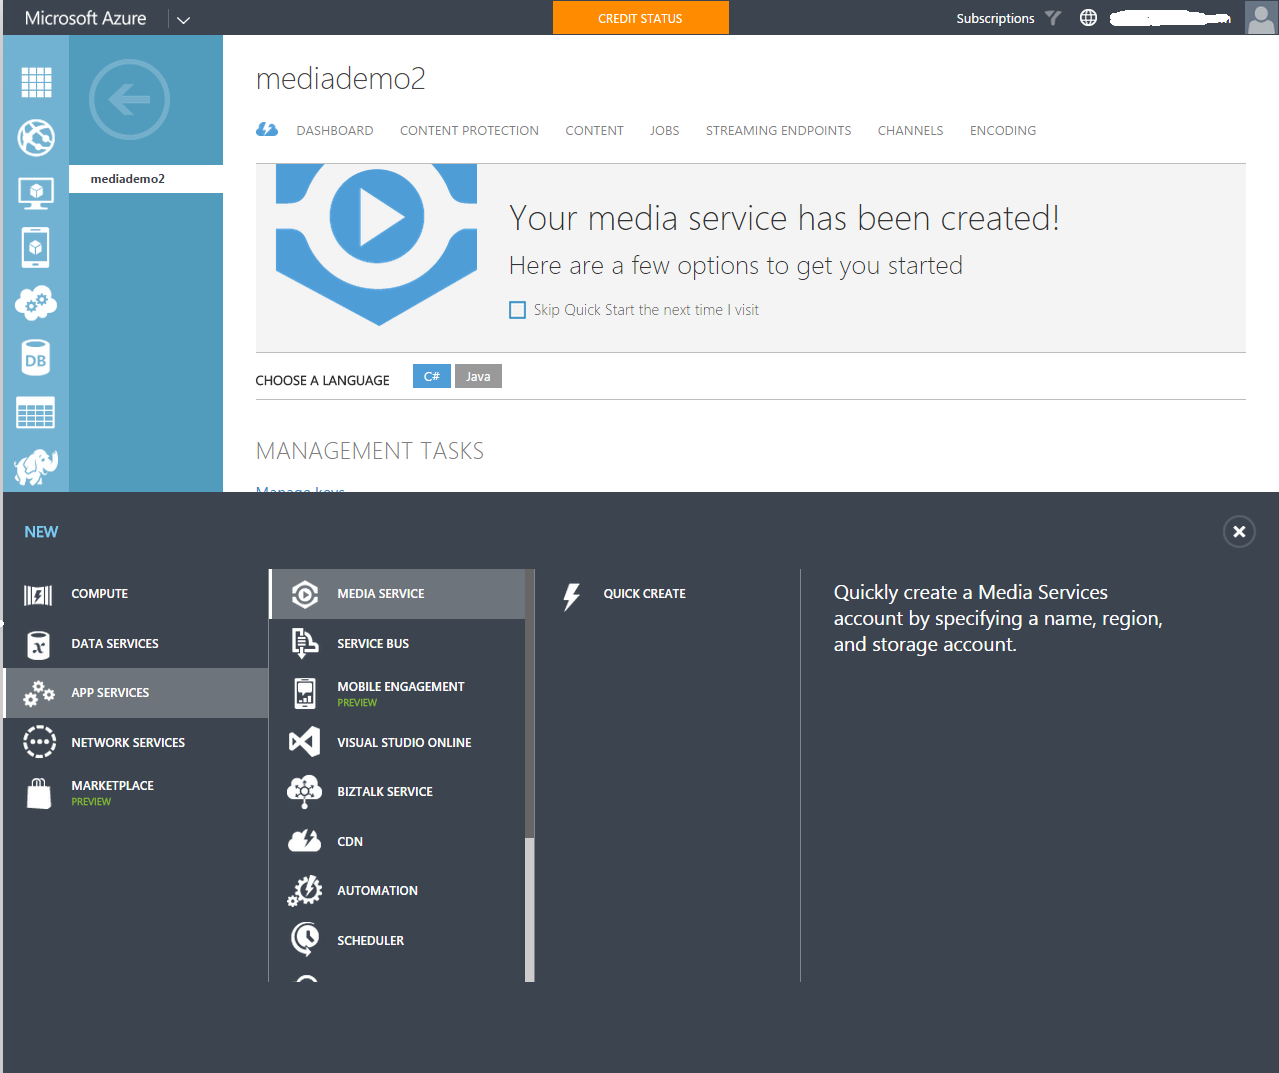 Provision Azure Media Services Account